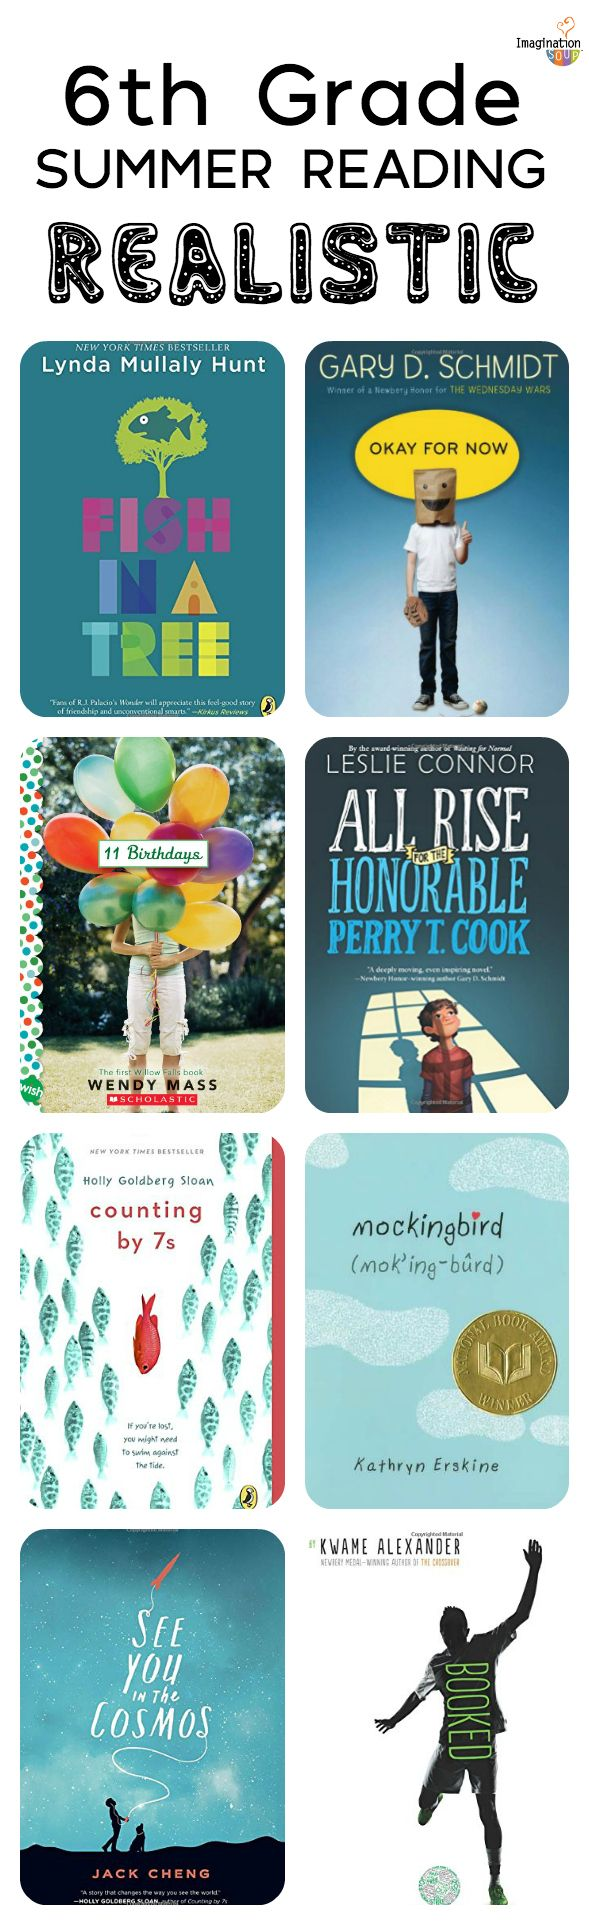 6th Grade Summer Reading List Ages 11 12 Books Worth Reading